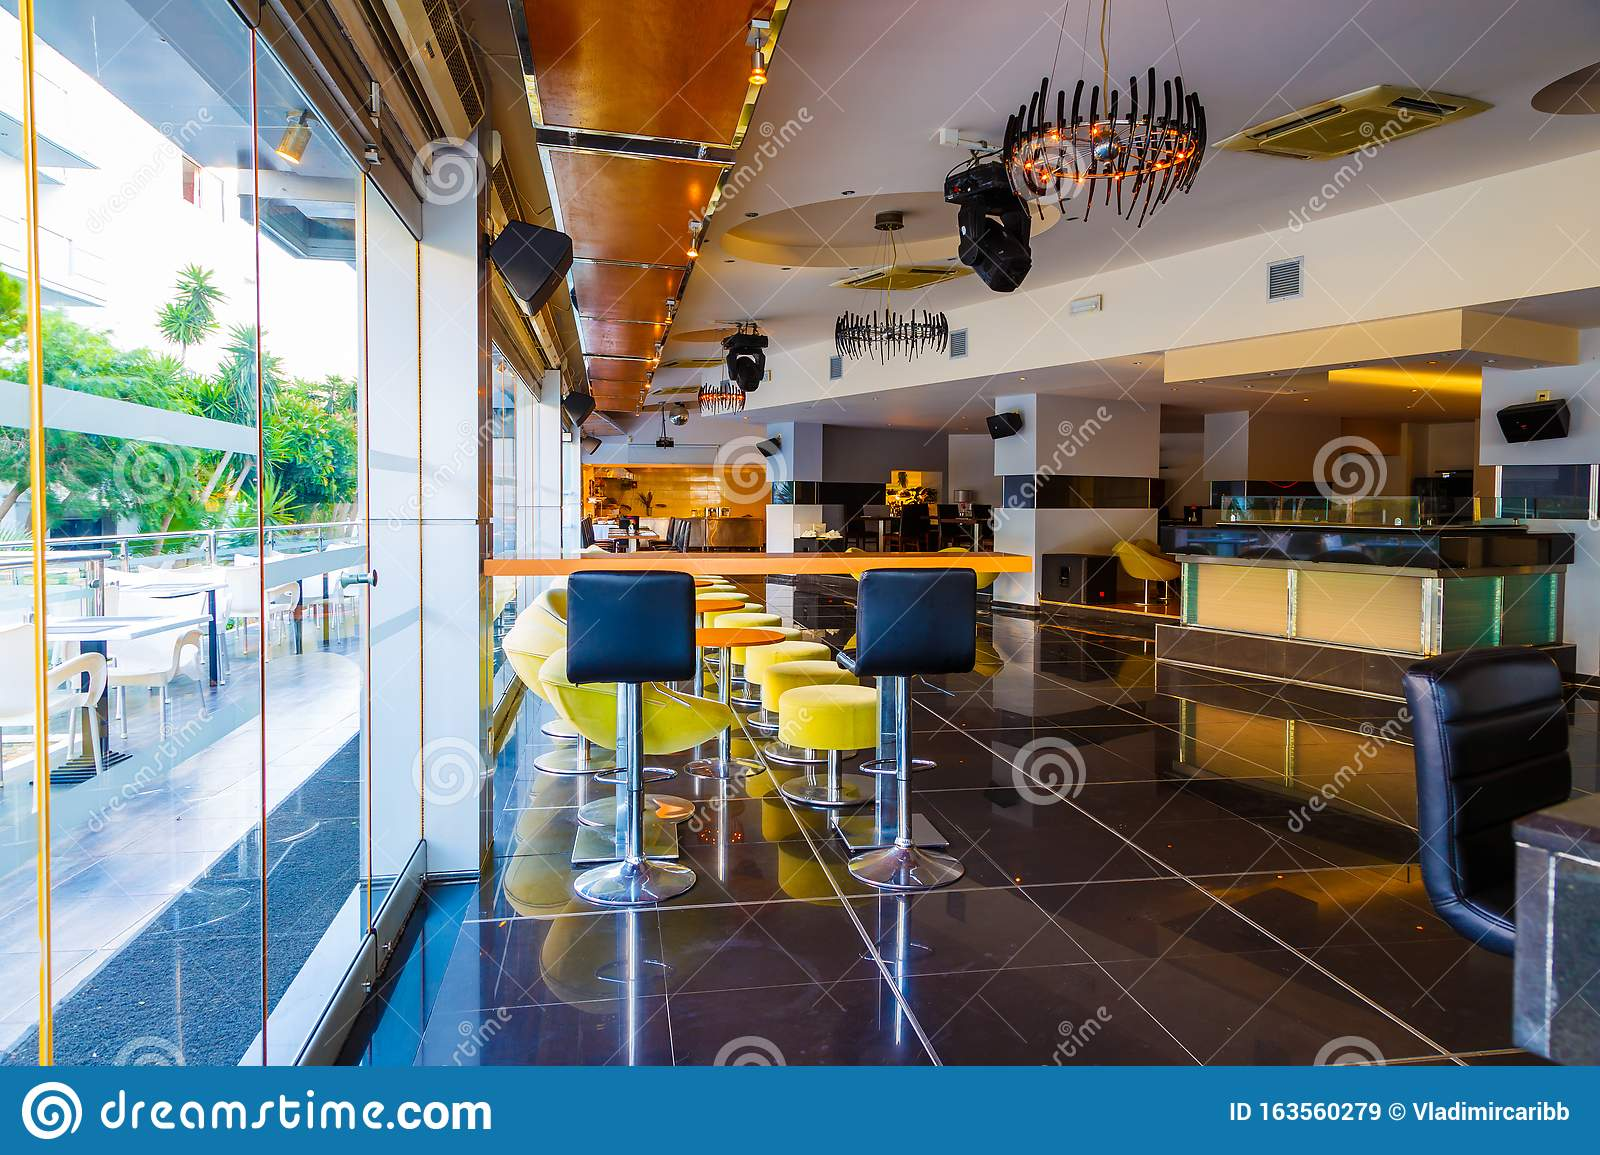 Oriental Style Interior Of The Japanese Restaurant With Nicely Served Table With Napkins Of The Luxury Five Stars Resort Hotel Stock Image Image Of Inside Celebrate 163560279